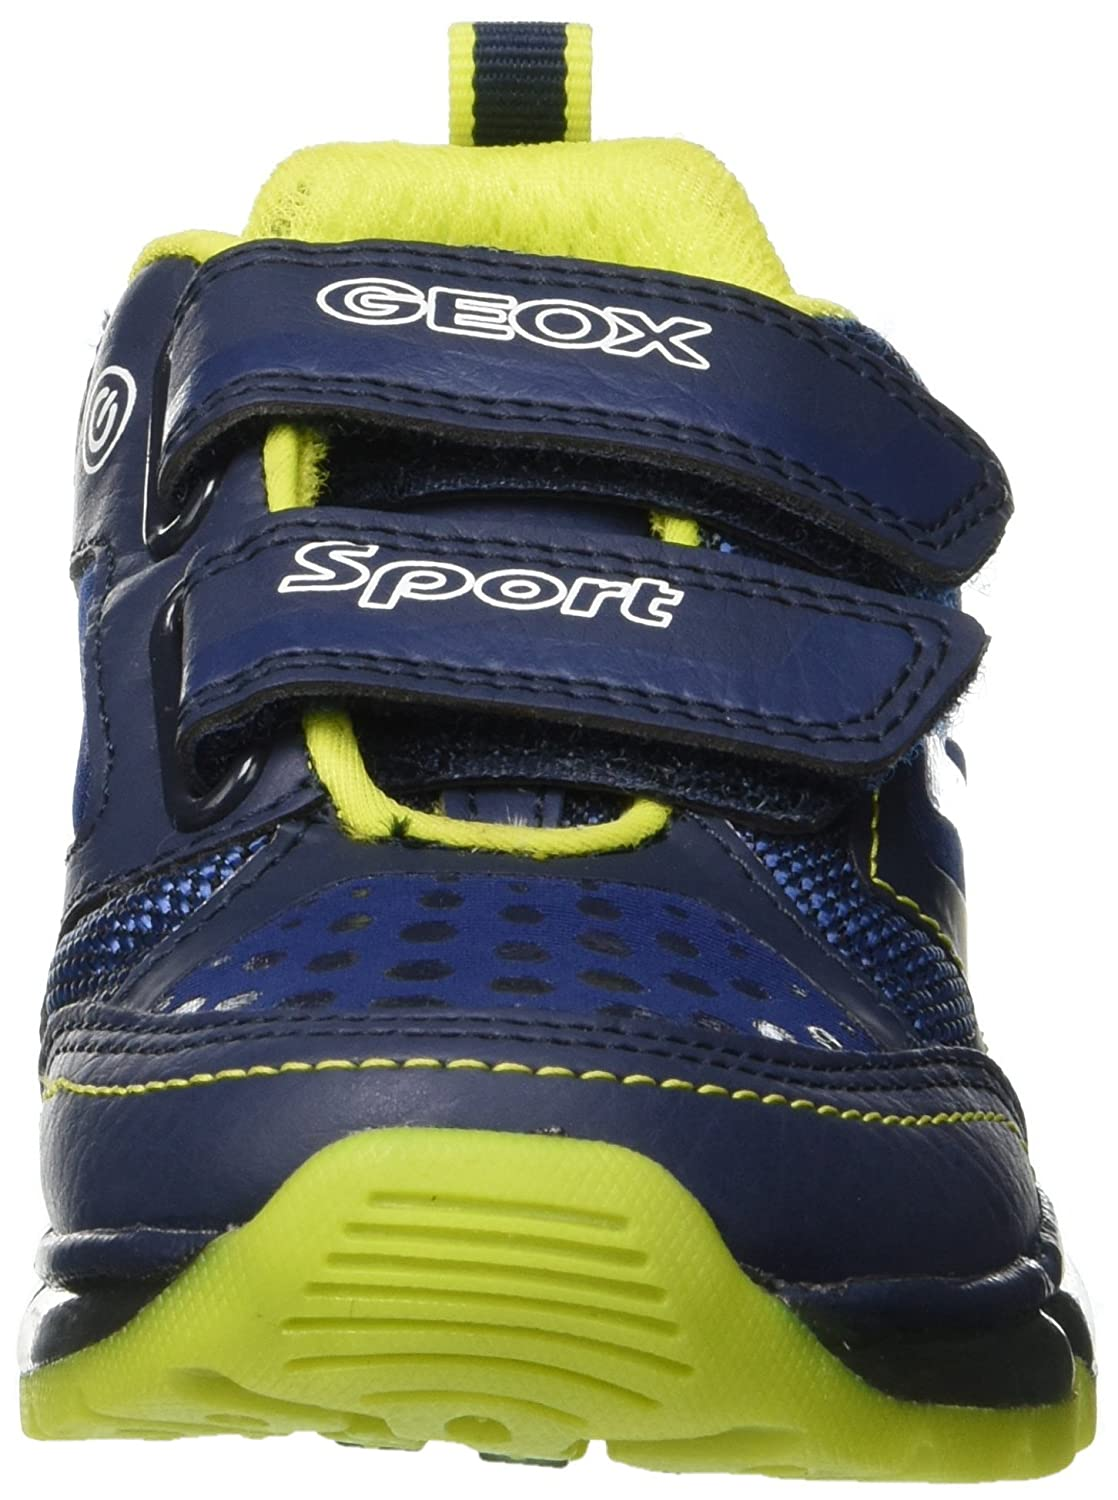 Geox J Android a Boys/' Low-Top Sneakers